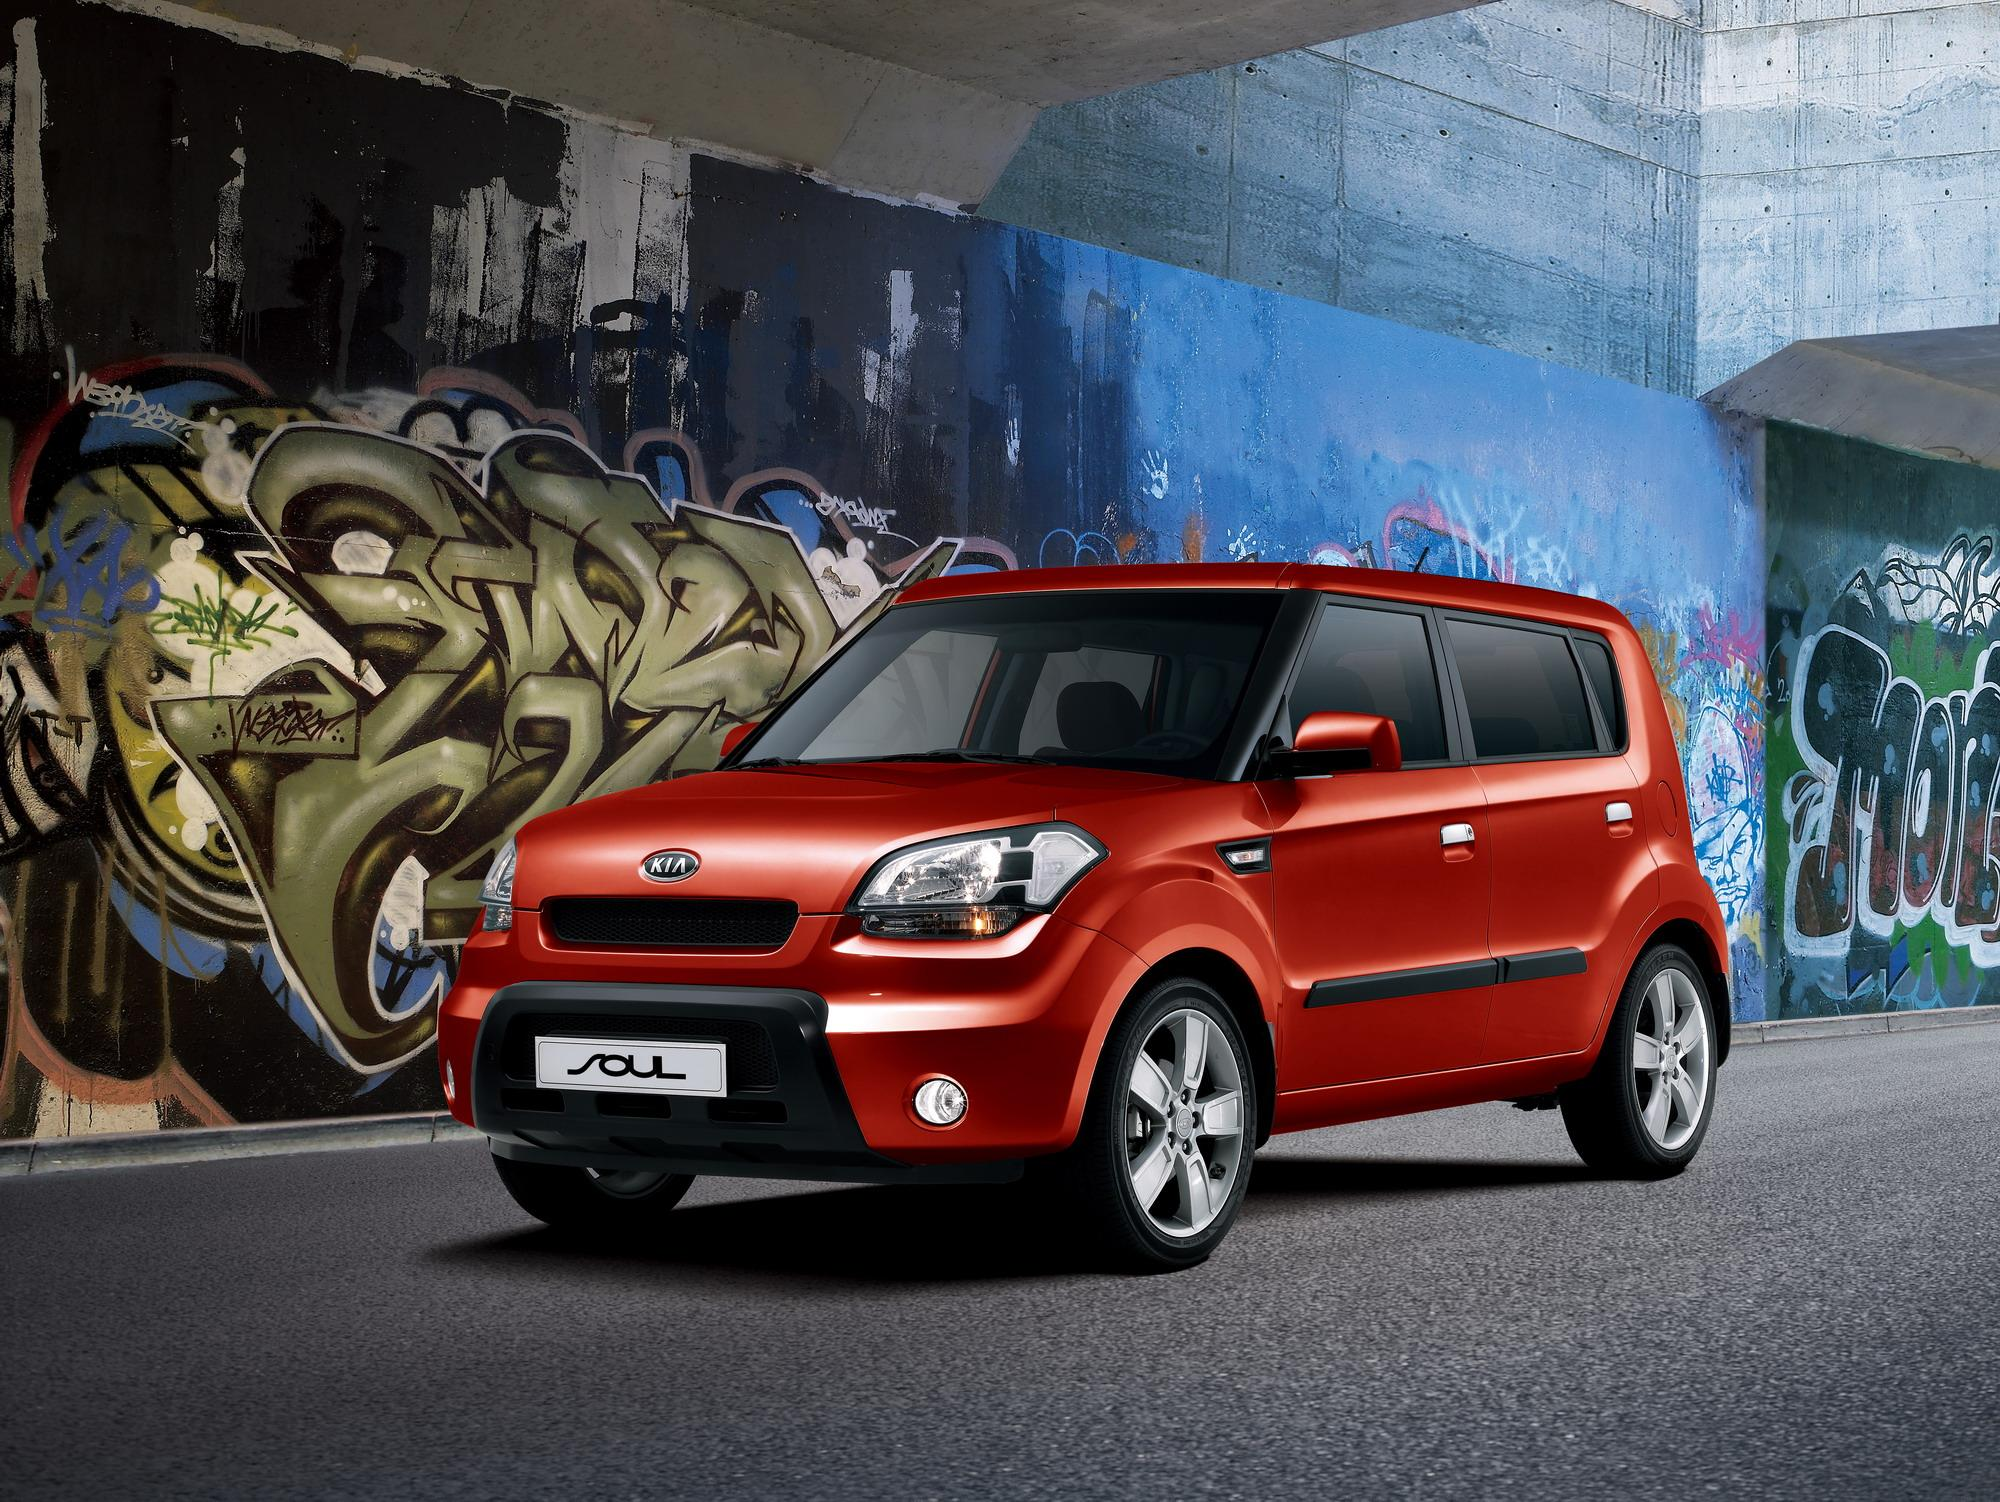 2010 Kia Soul Us Pricing Announced Top Speed